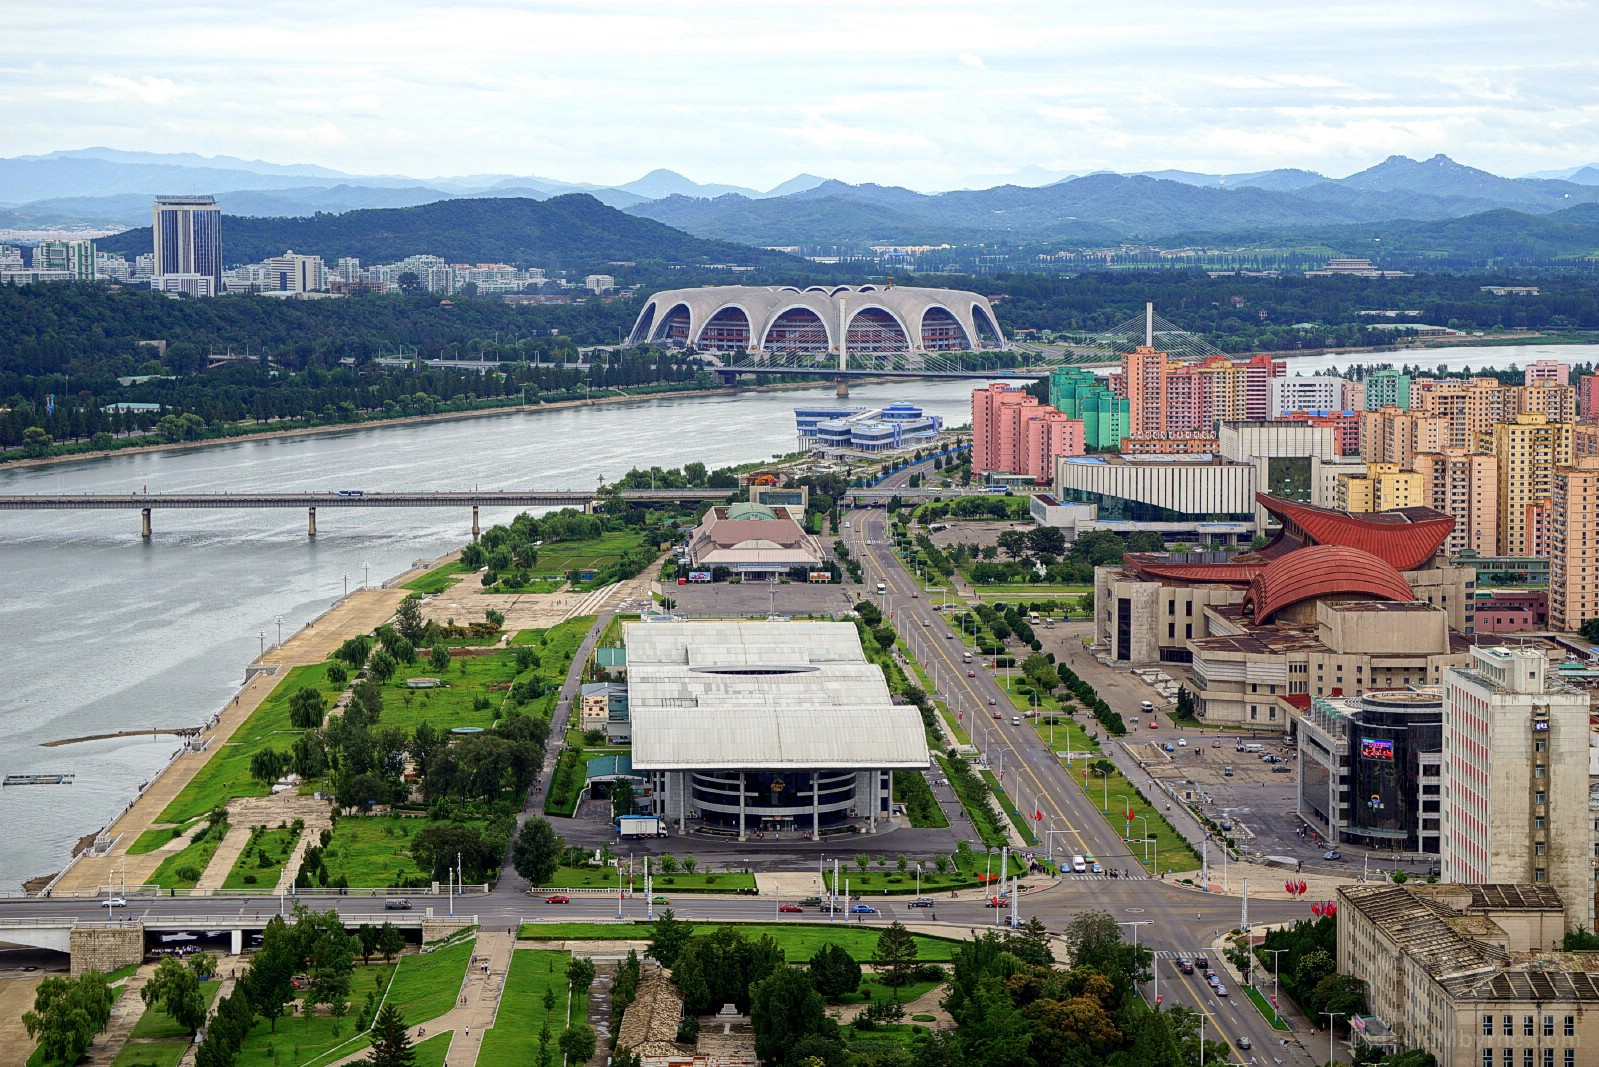 Northern Pyongyang and the Rungrado 1st of May Stadium, the world;s largest, as seen from the top of the Juche Tower, Pyongyang, North Korea. August 15, 2017.